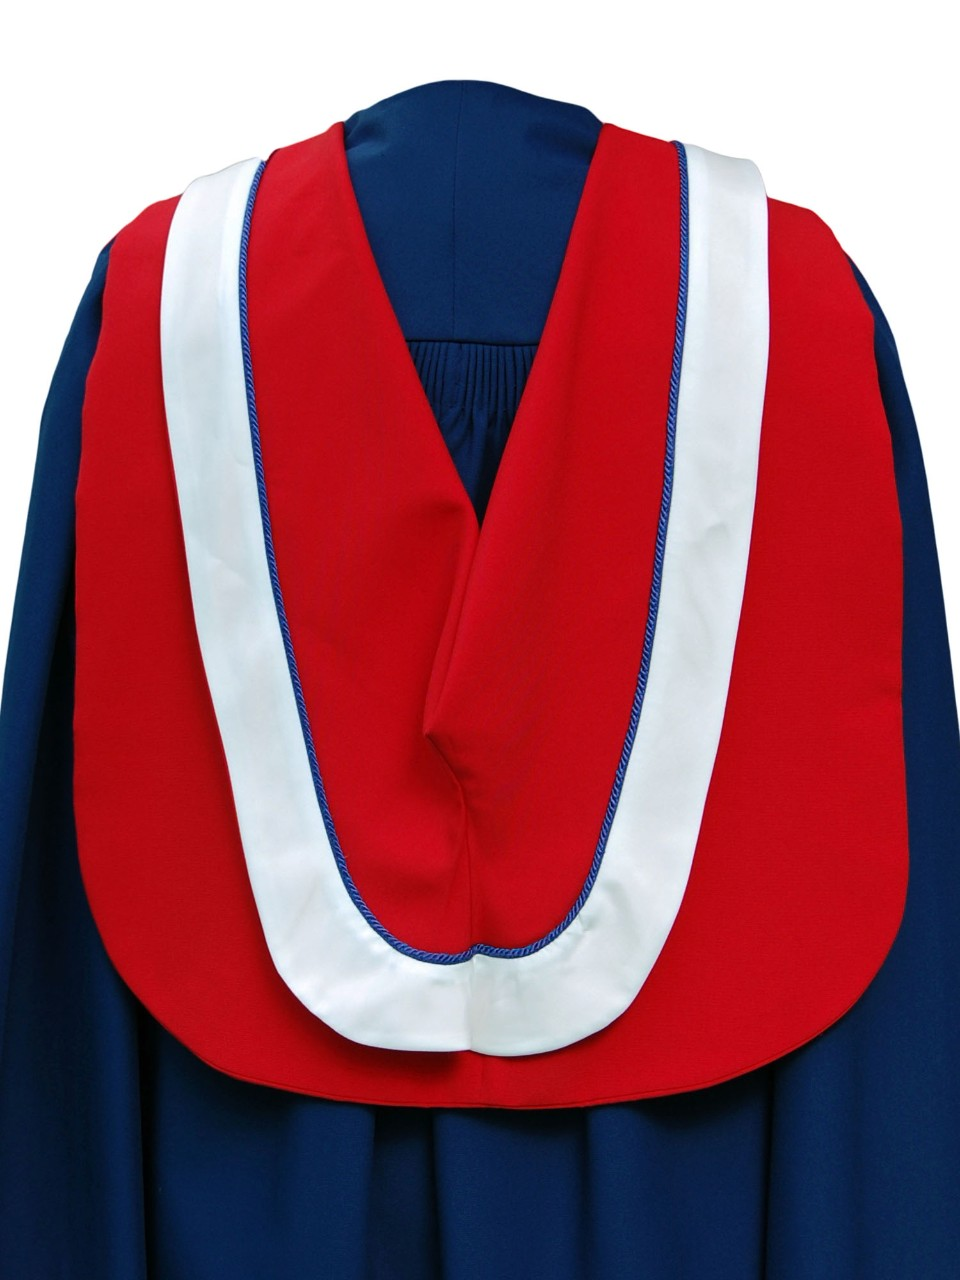 The Master of Education hood is wide white border and royal blue cording